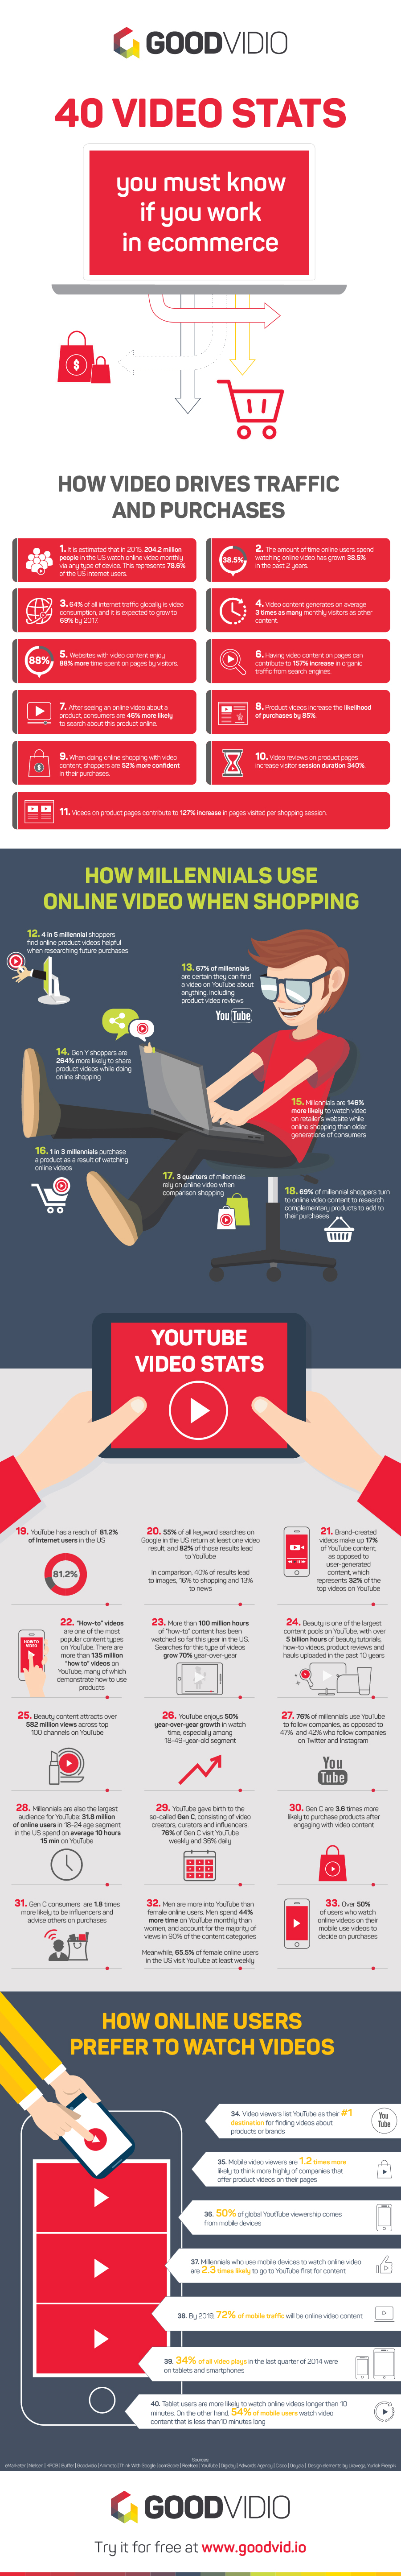 40 Video Stats You Must Know if You Work in eCommerce [Infographic] | Social Media Today